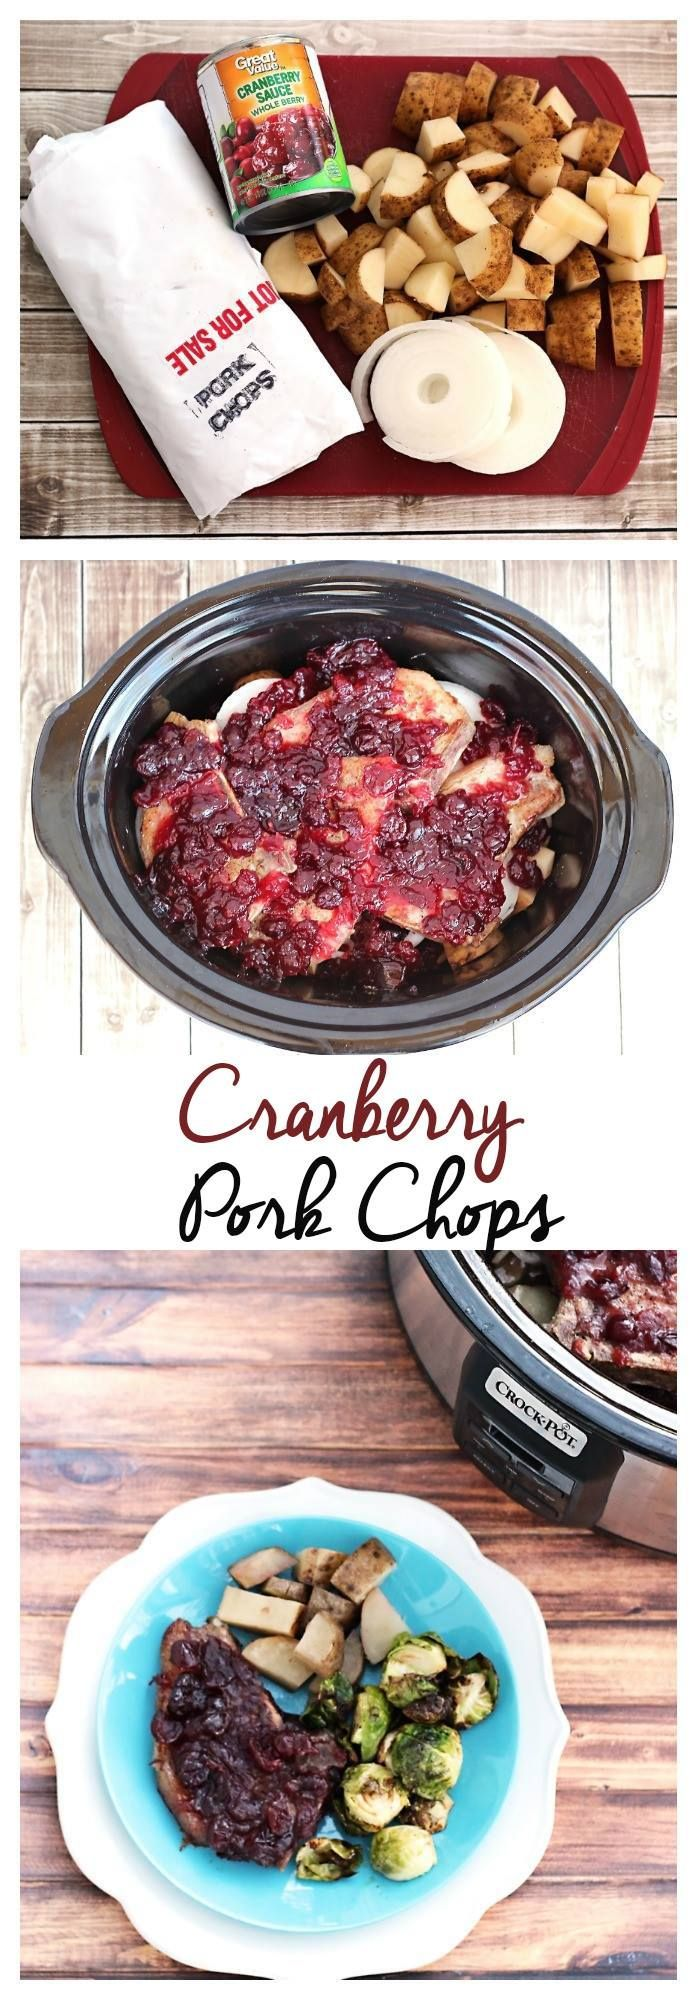 Slow Cooker pork chop recipes can be perfect for entertaining with a few tips and tricks. Use this Crock Pot pork chop recipe with cranberry sauce for a delicious holiday meal with only a few simple ingredients!